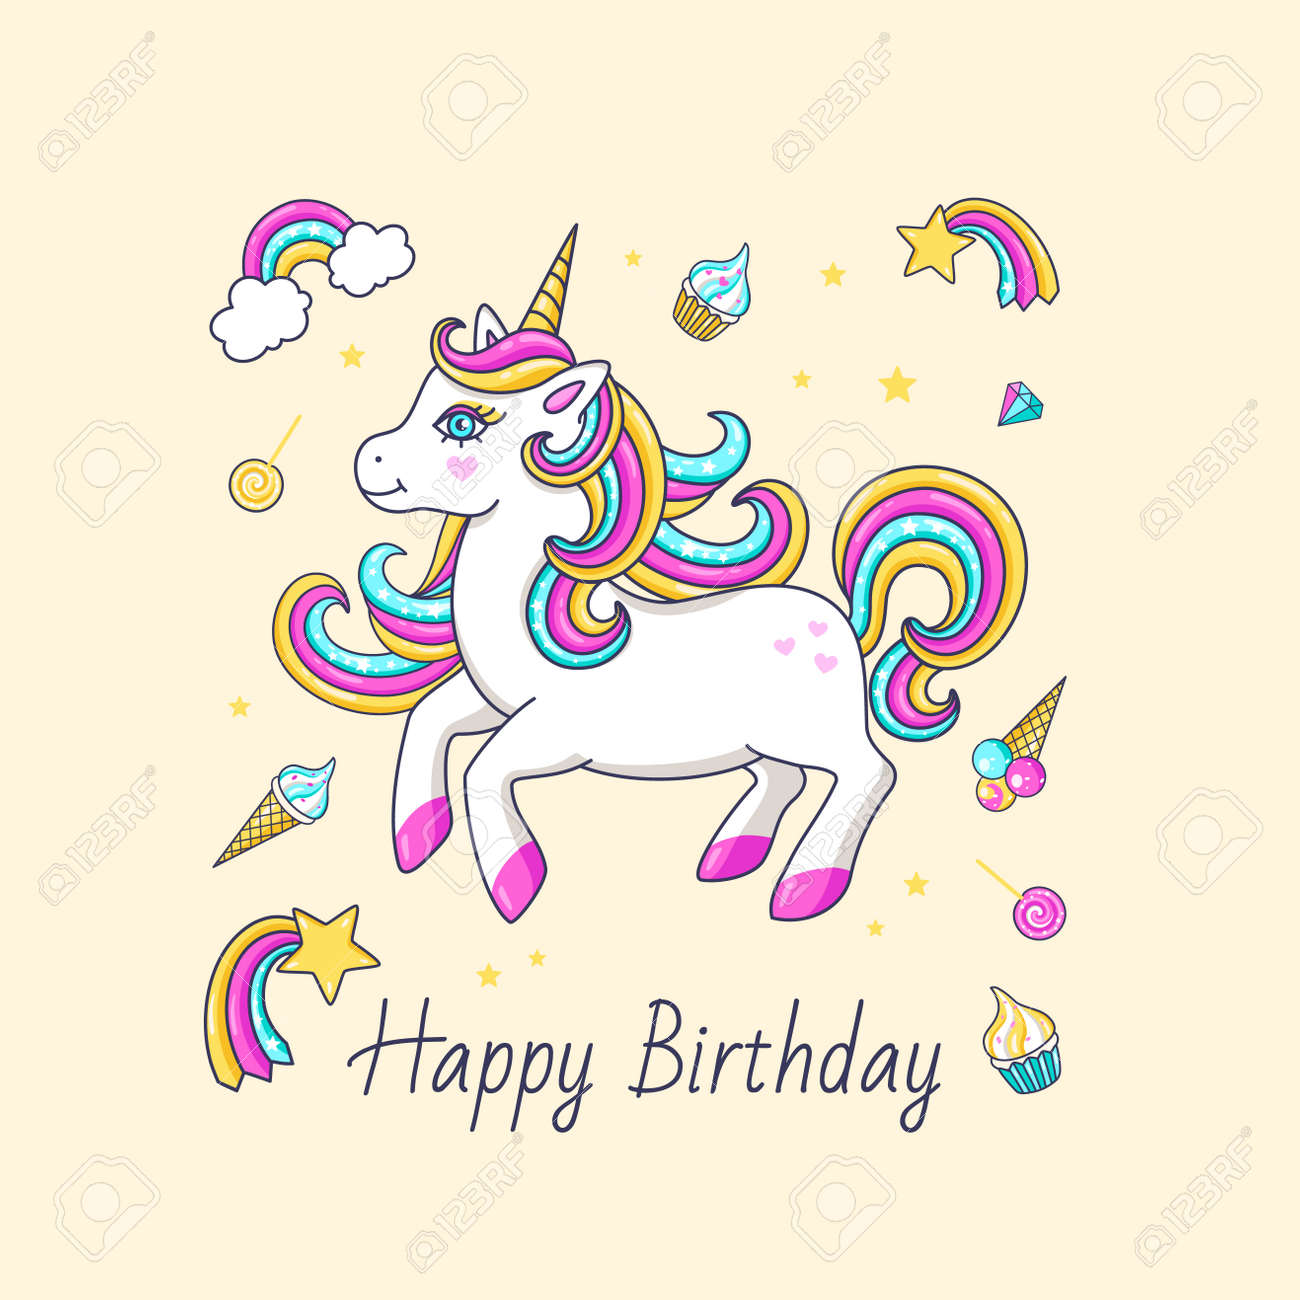 Happy Birthday Card With Cute Unicorn Vector Illustration Stock